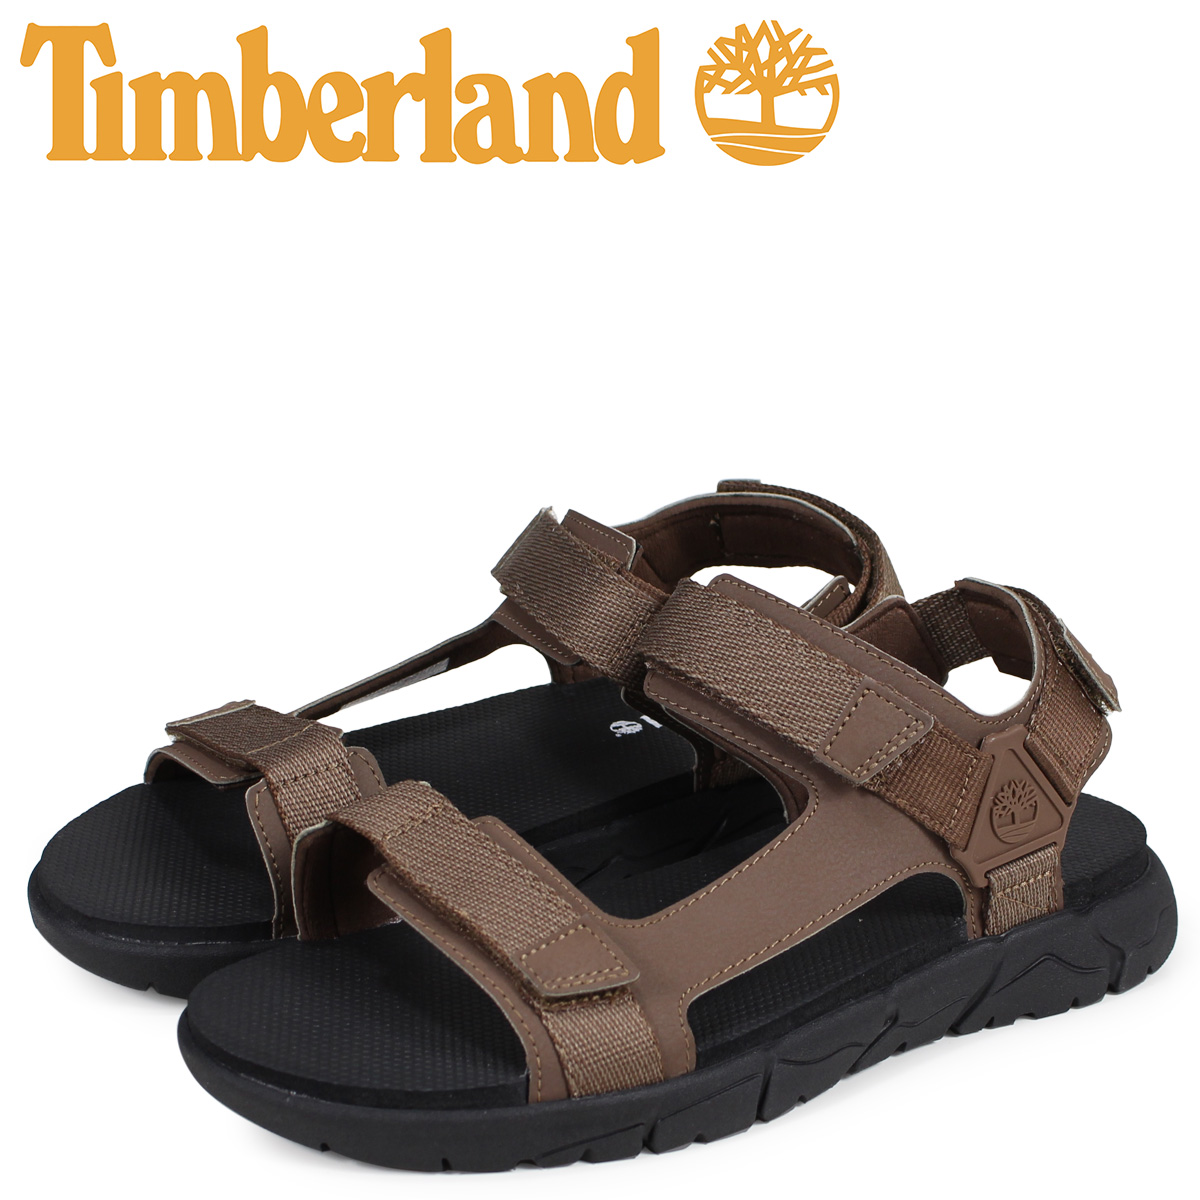 SANDAL Timberland sports men WINDHAM TRAIL sandals sandals brown A1VVY Timberland BdoCex